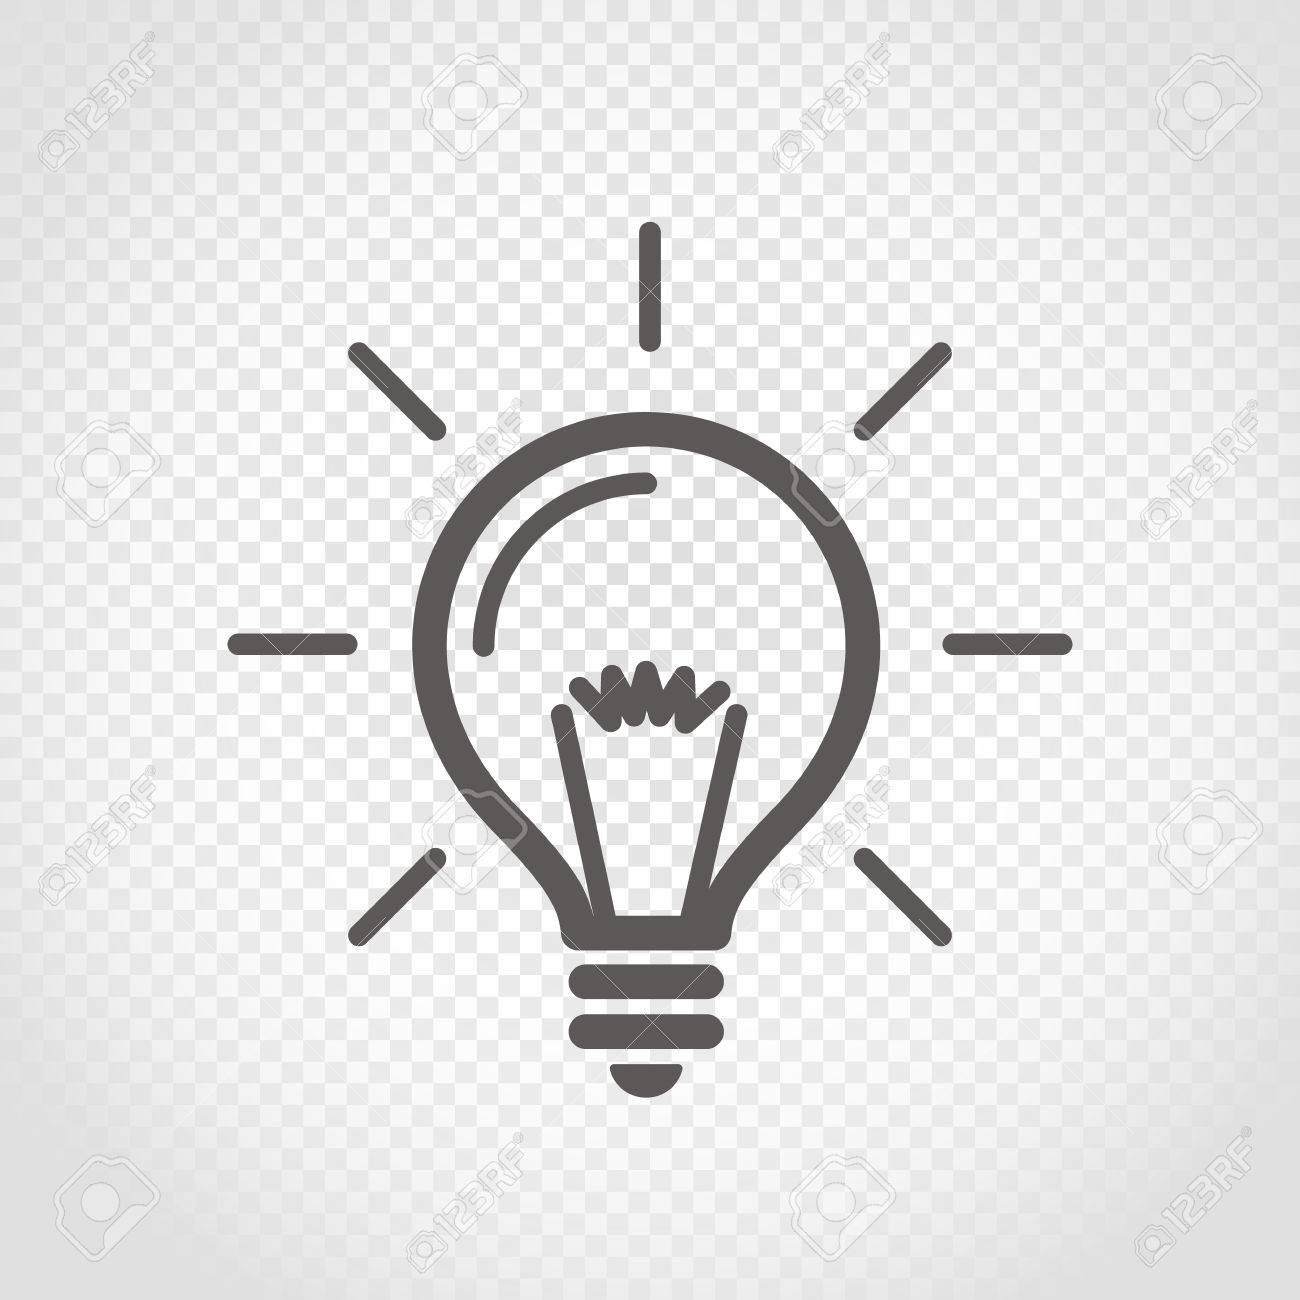 light bulb vector icon on transparent background royalty free cliparts vectors and stock illustration image 68033224 123rf com